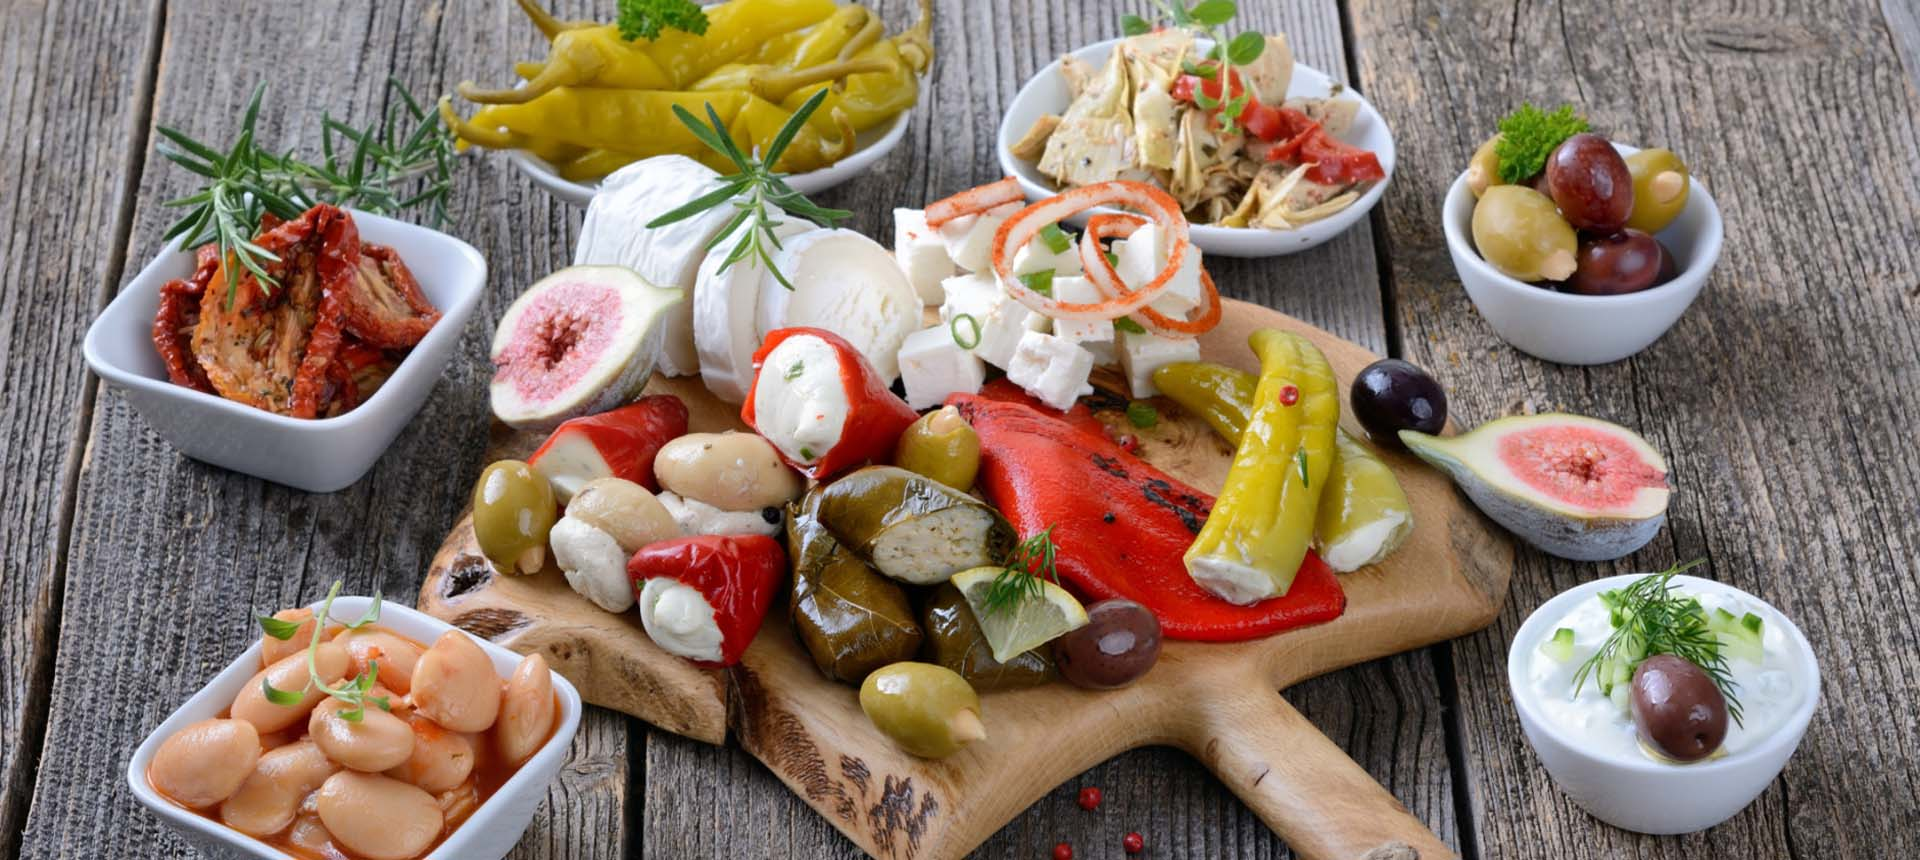 You will not be disappointed by the quality of the Greek restaurants in Athens. The ingredients are local and of the highest quality!